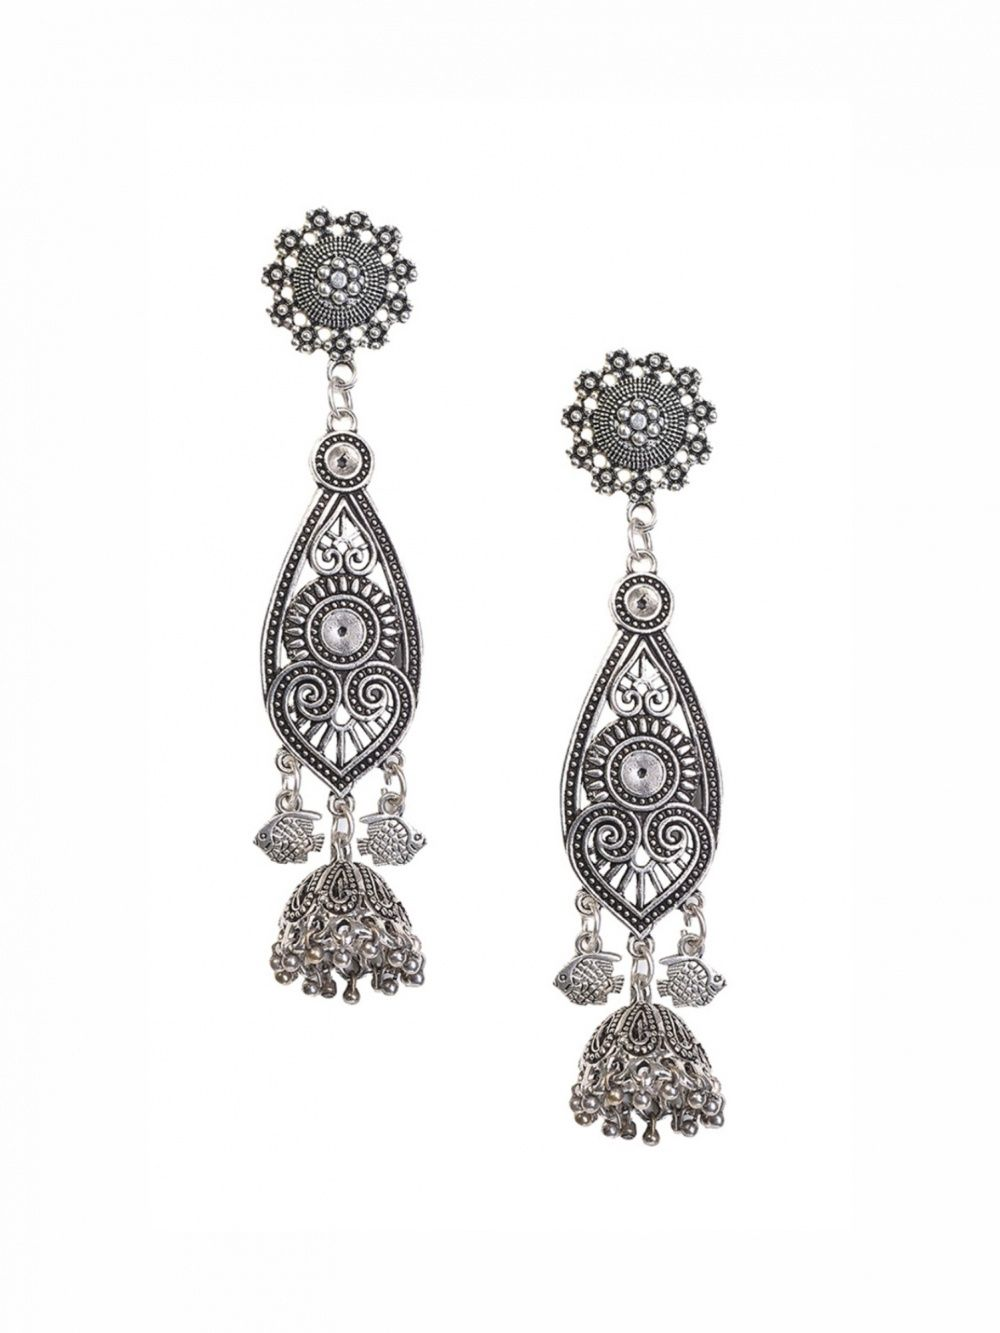 7c2f5e19e August Line Earrings : Buy August Line Zoya Root Earrings Online ...